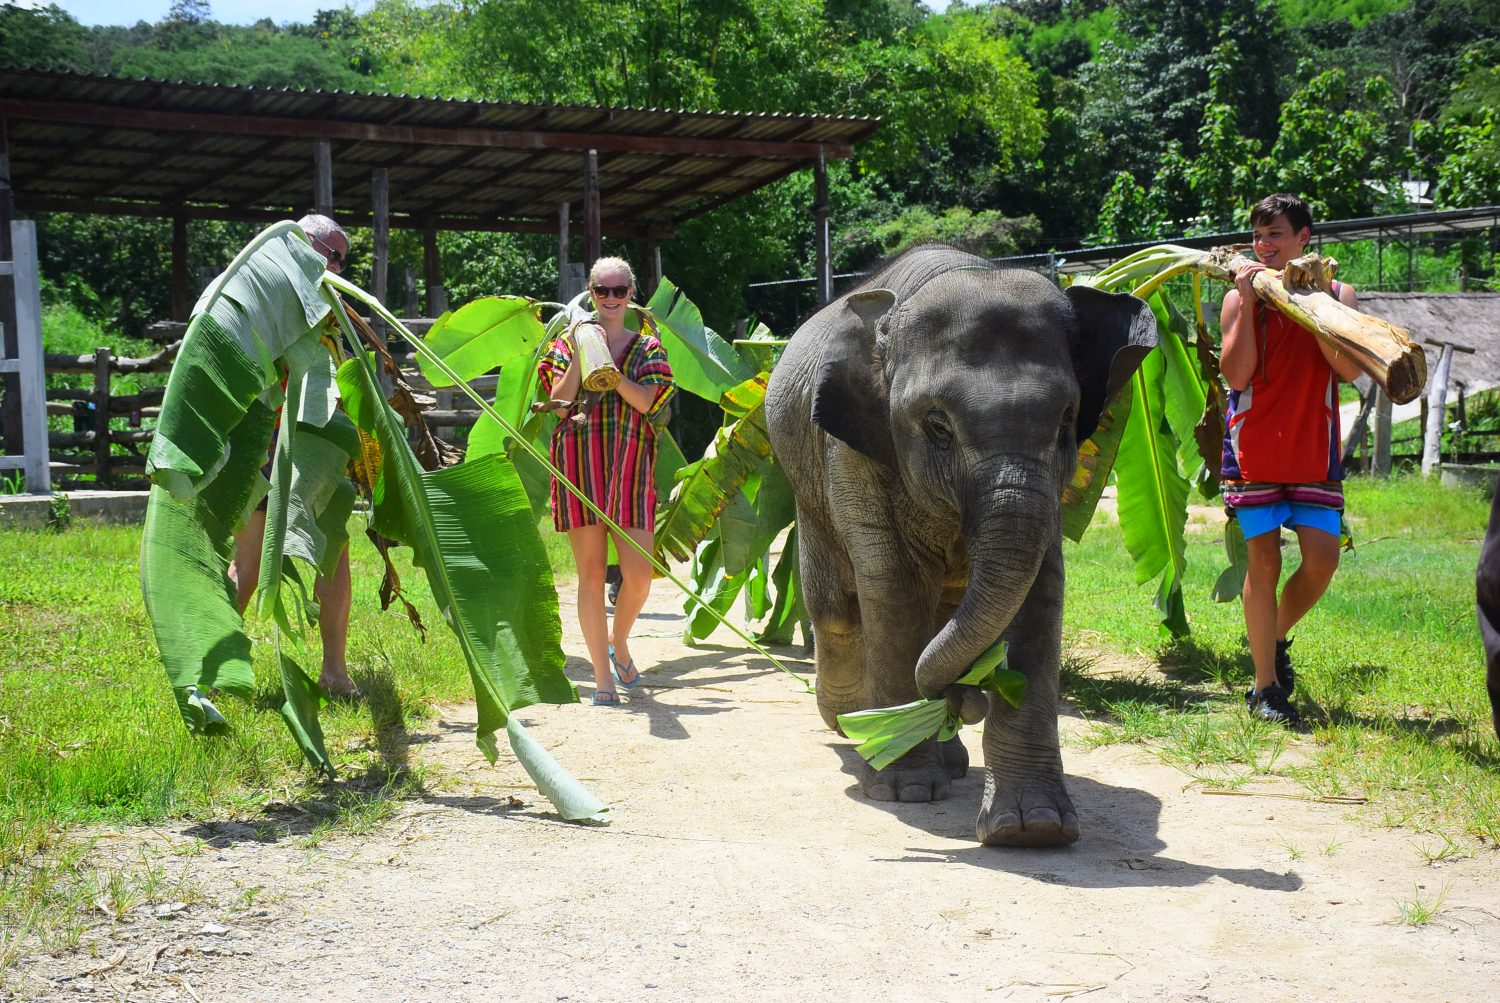 The best Elephant Sanctuary in Chiang Mai